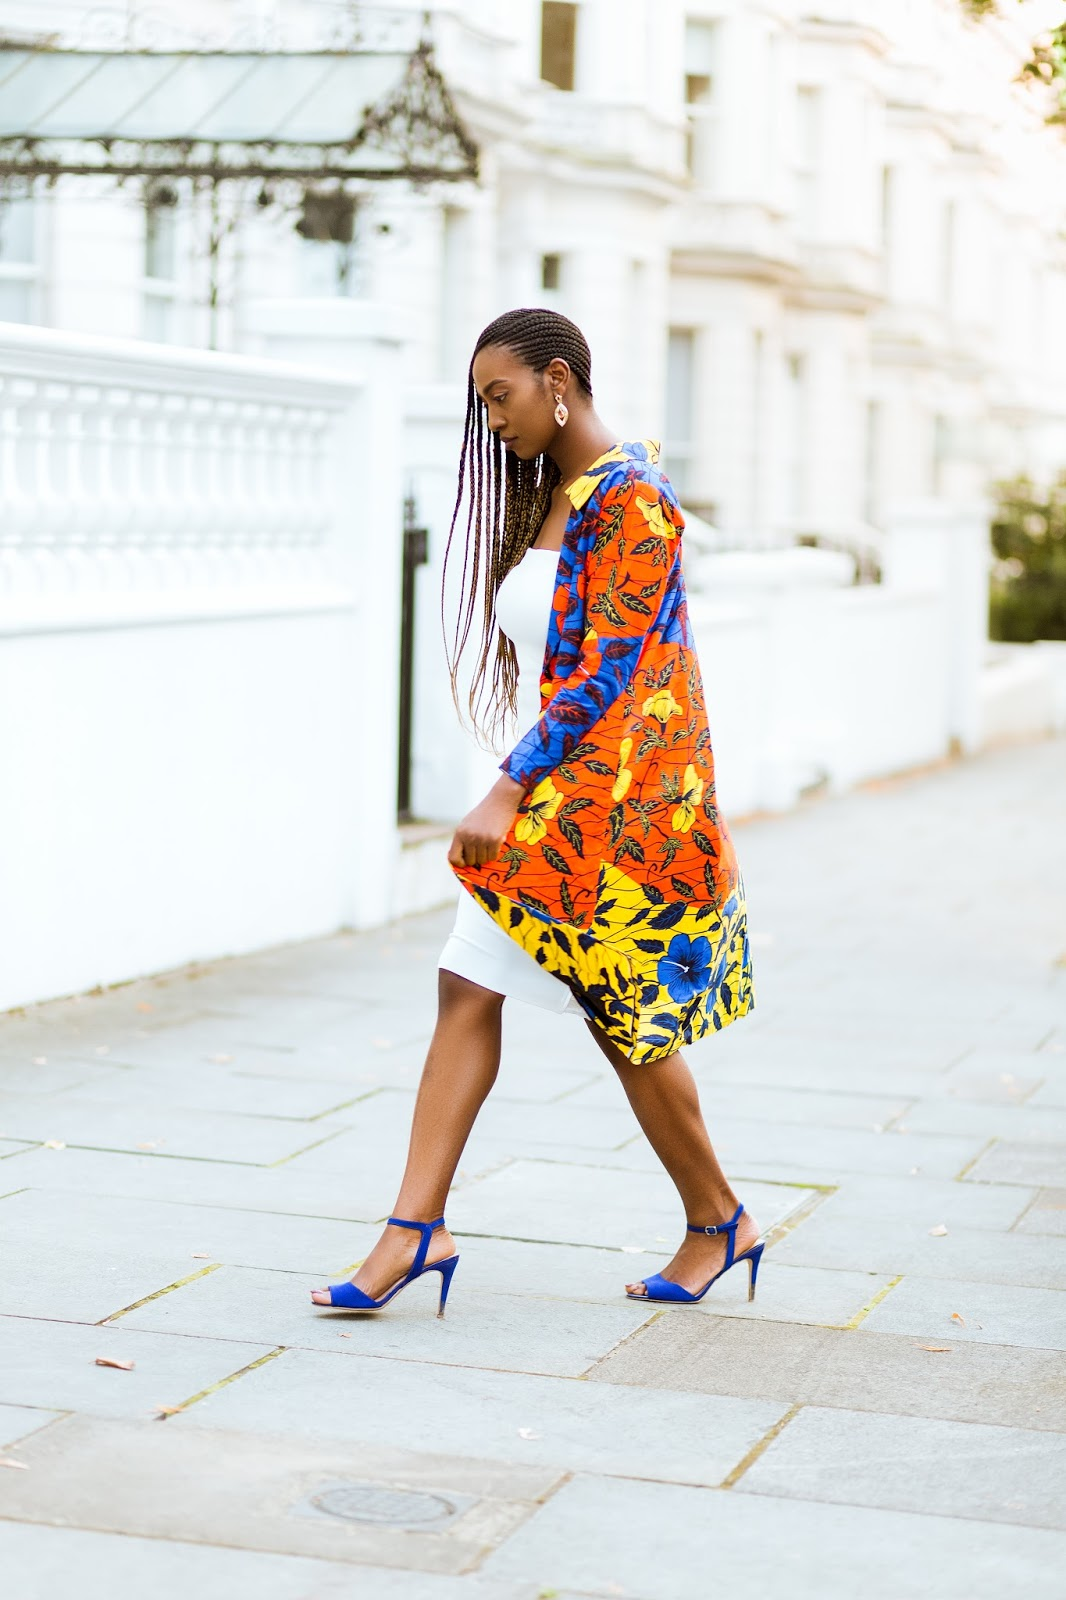 Ankara Jacket on Black Fashion Blogger